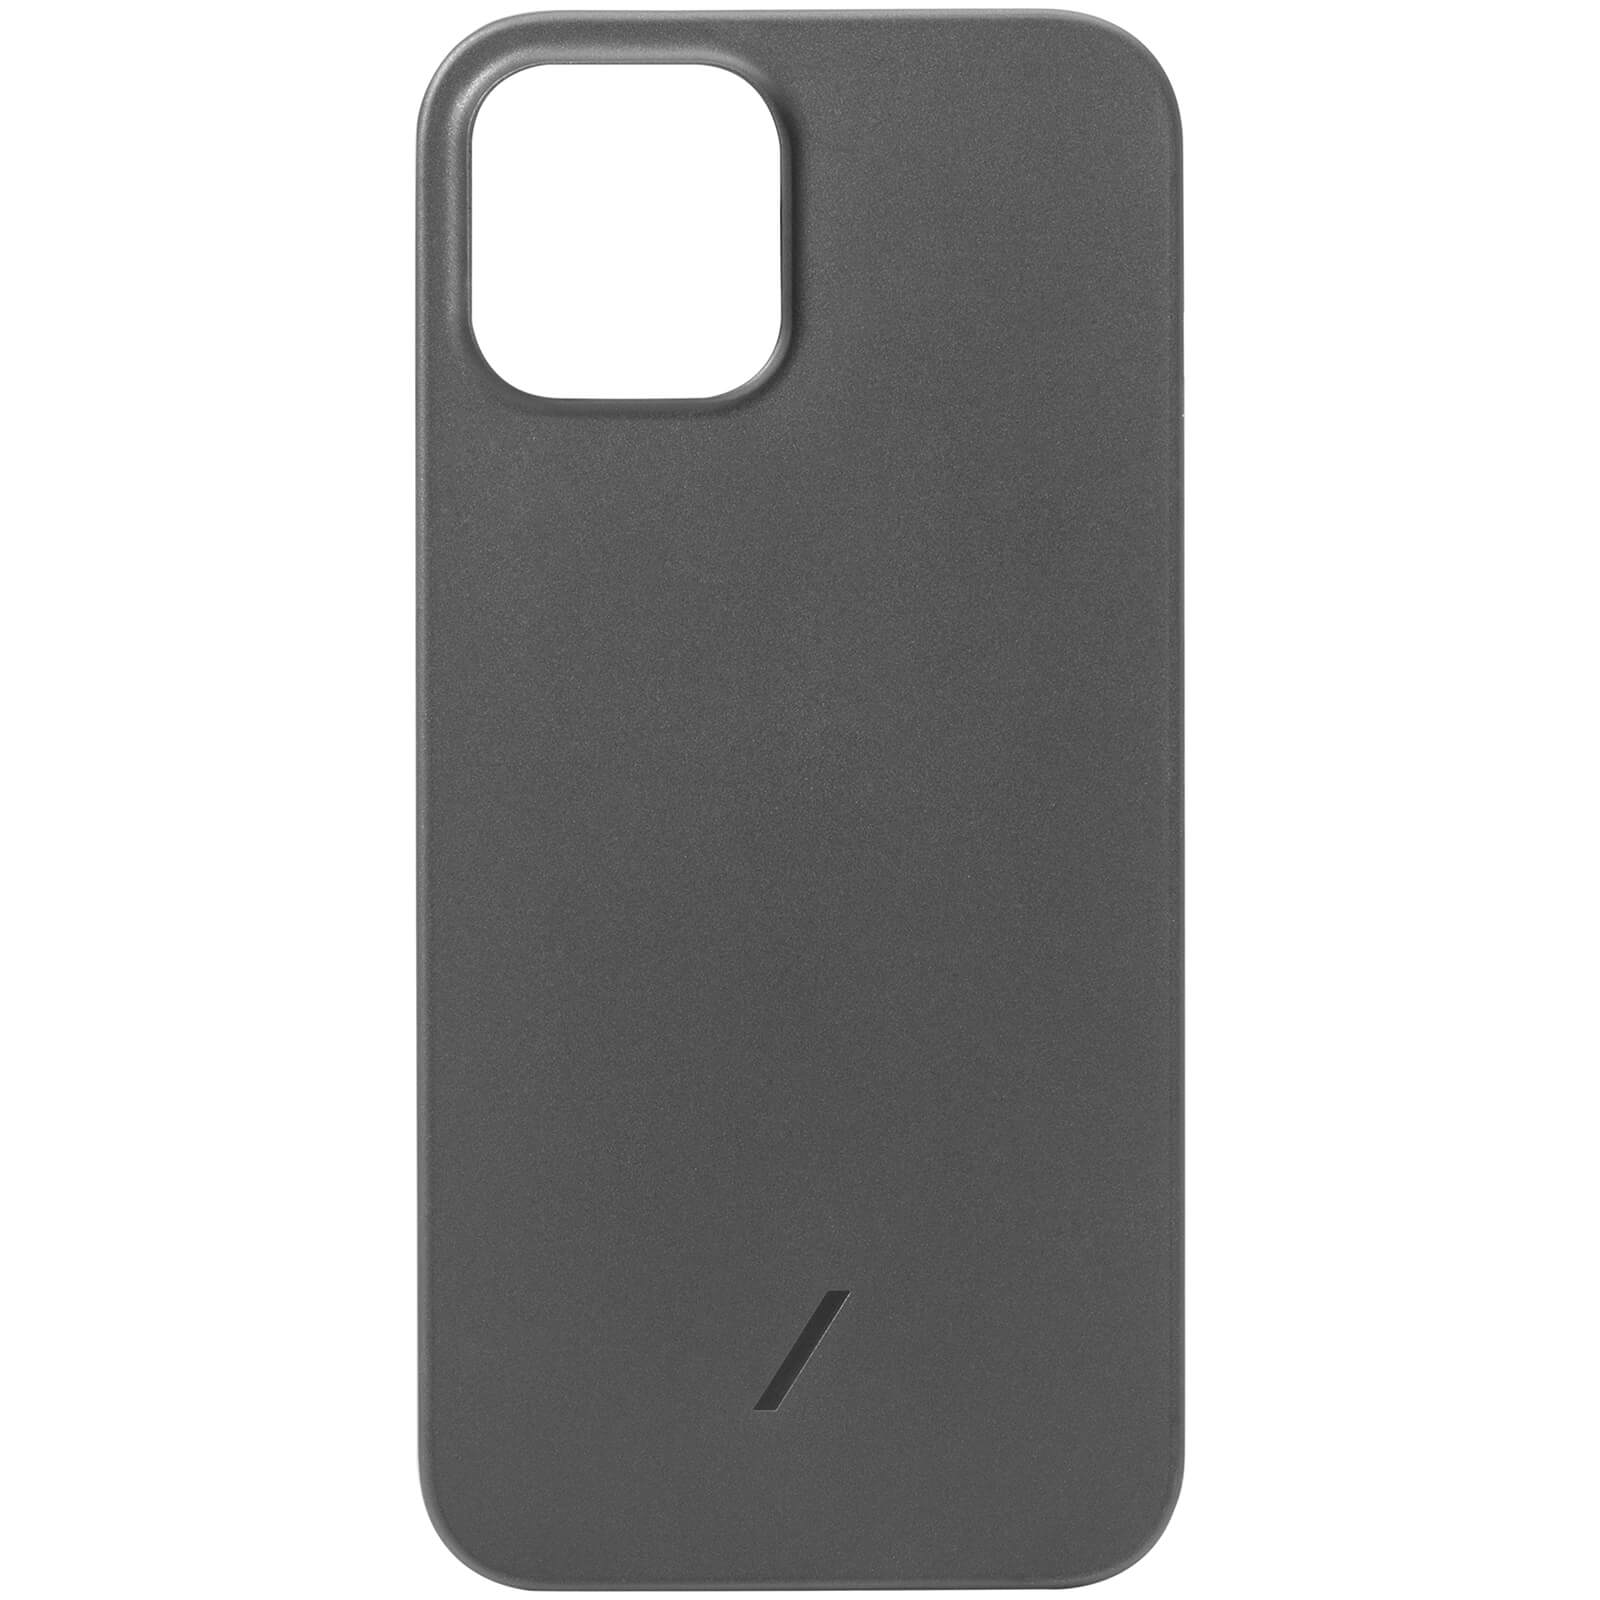 Native Union Clic Air Anti-Bacterial iPhone Case - Smoke - 12/12 Pro